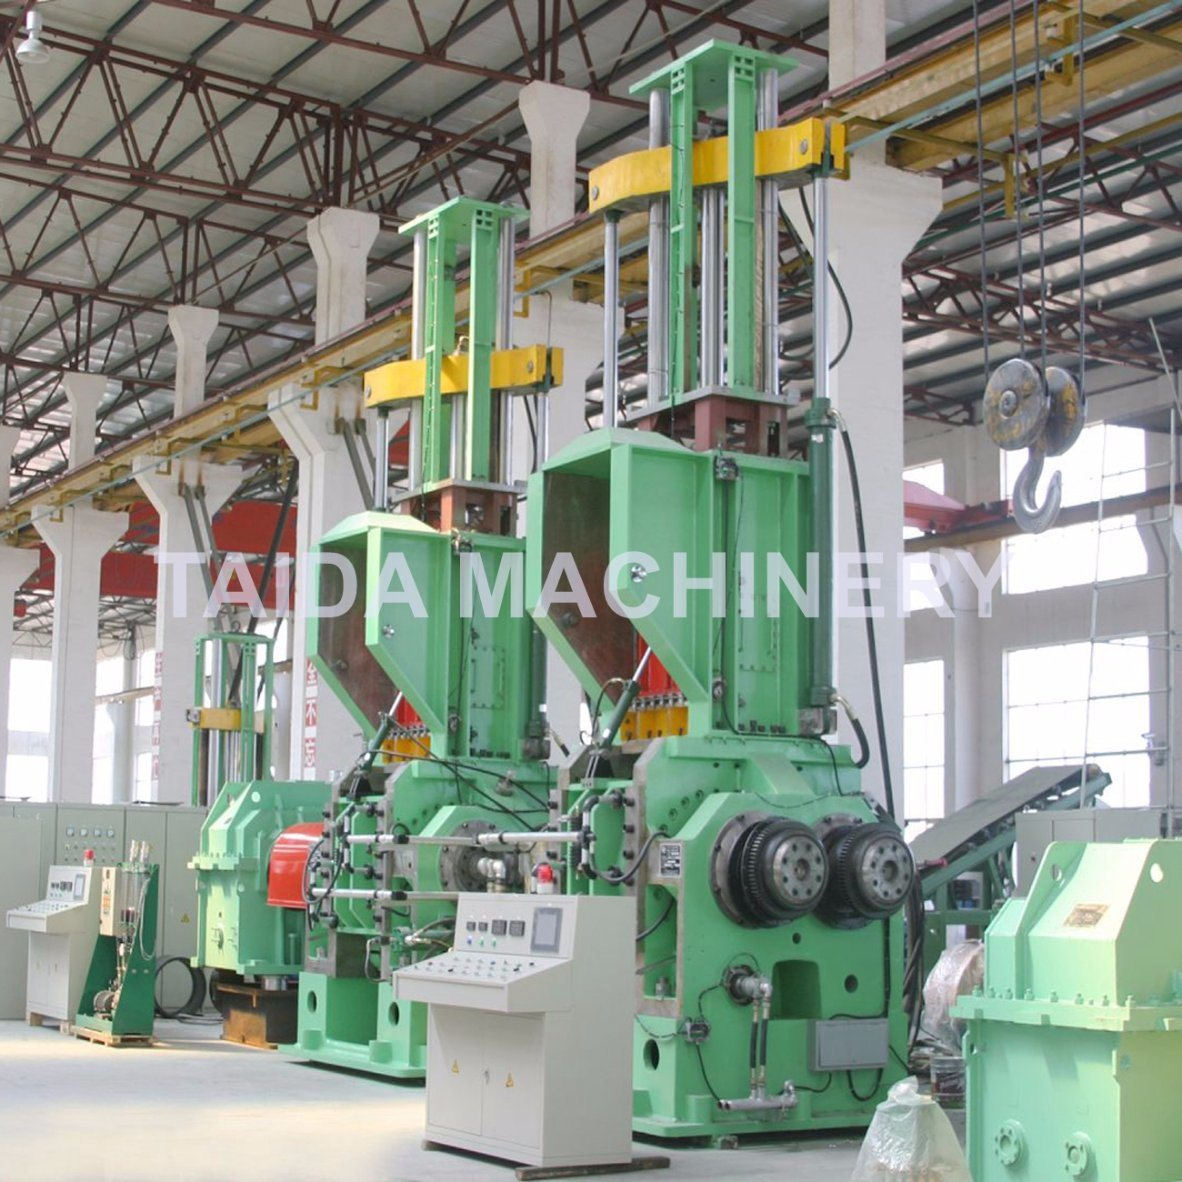 X (S) N-20, 35, 55, 75, 110 Liters Rubber Compounding Dispersion Pressurized Banbury Kneader Mixer Machine